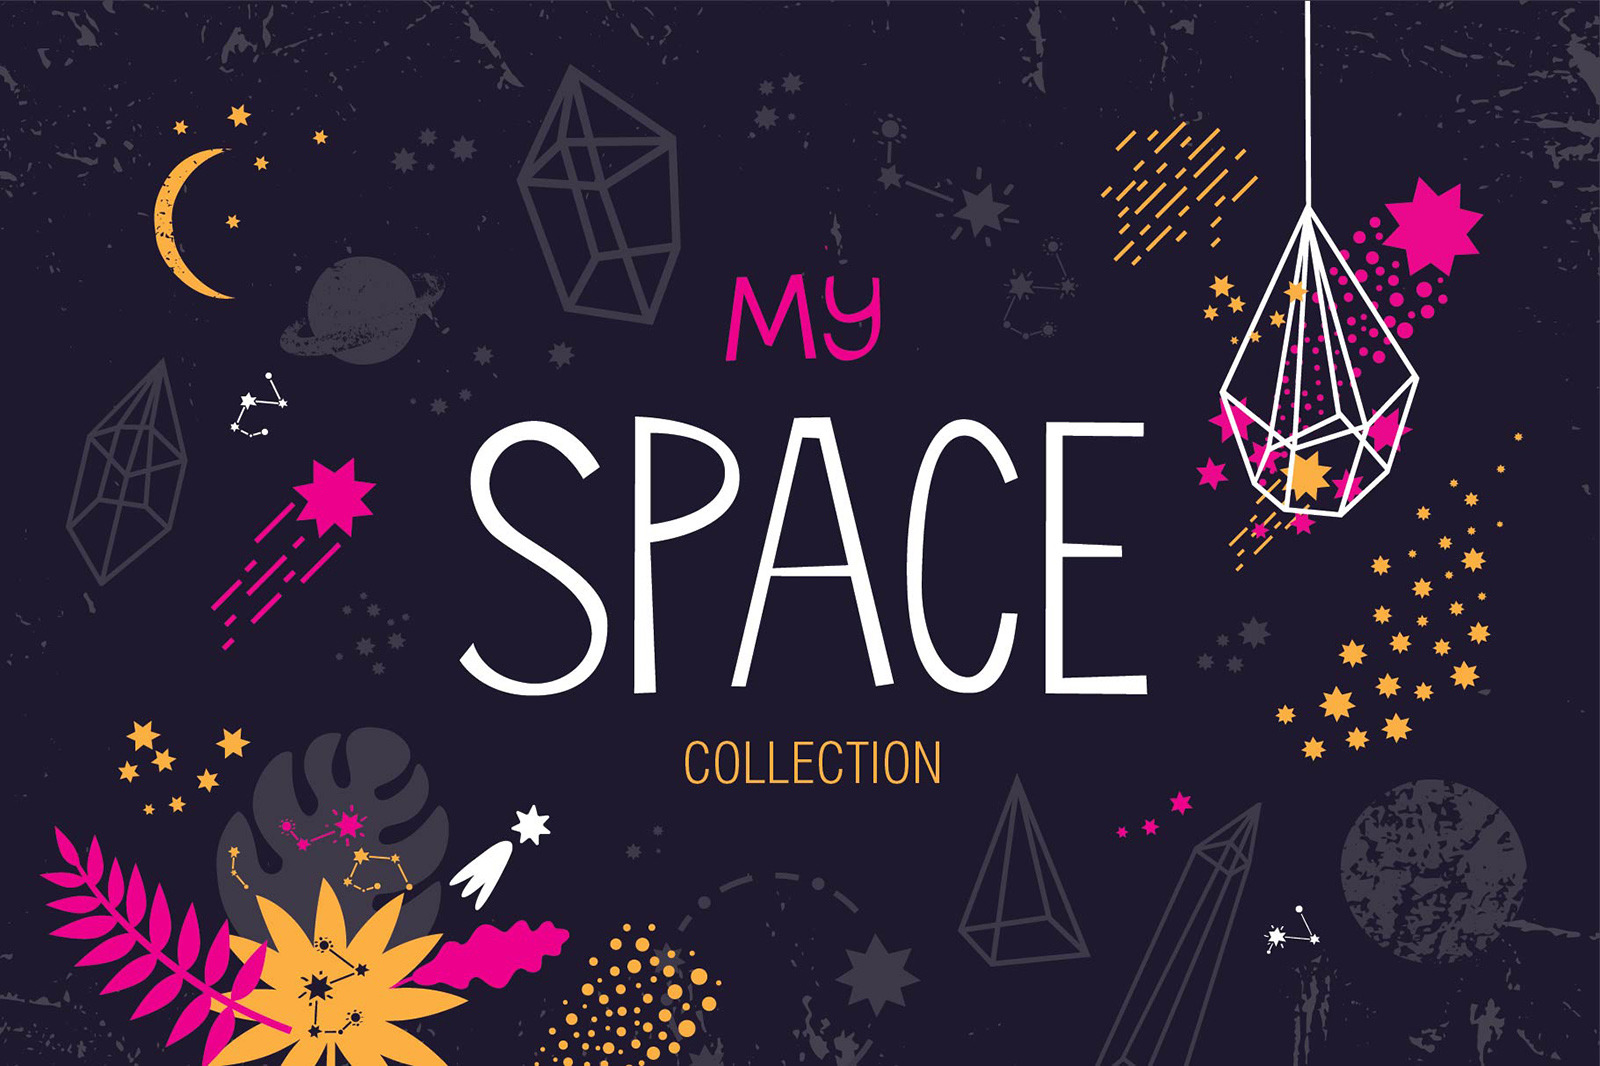 MY SPACE. Graphic set